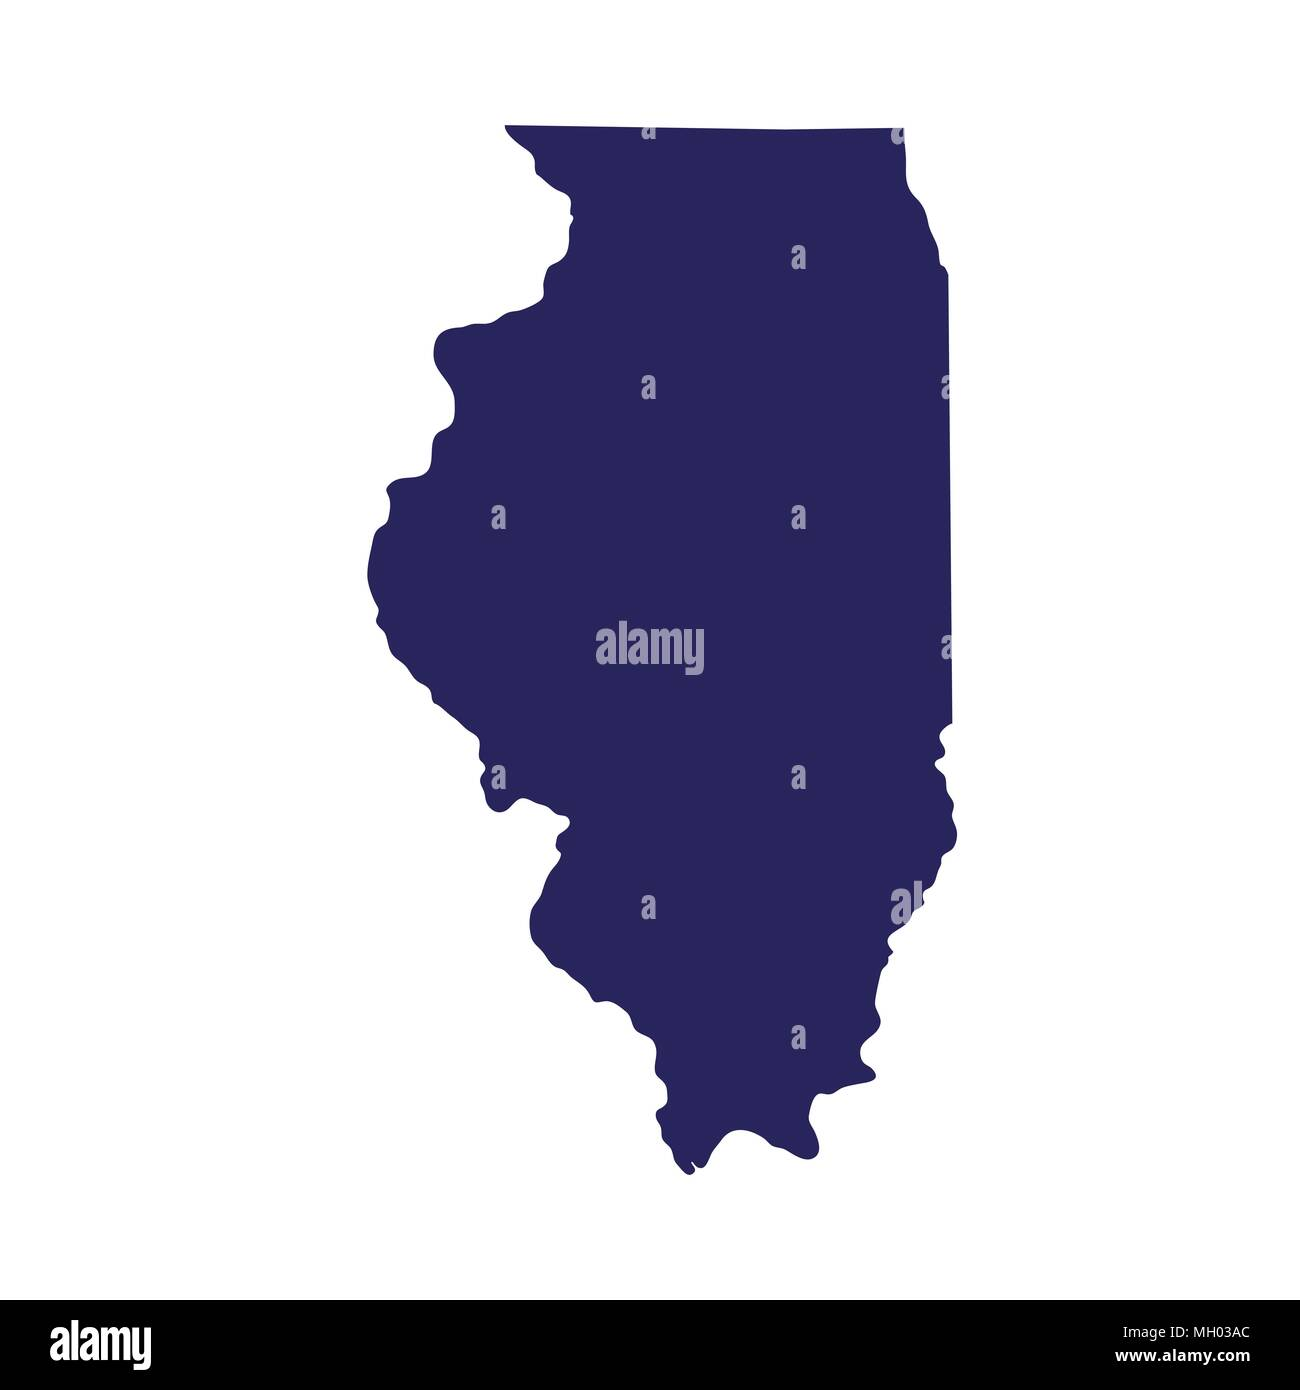 map of the U.S. state of Illinois  - Stock Vector